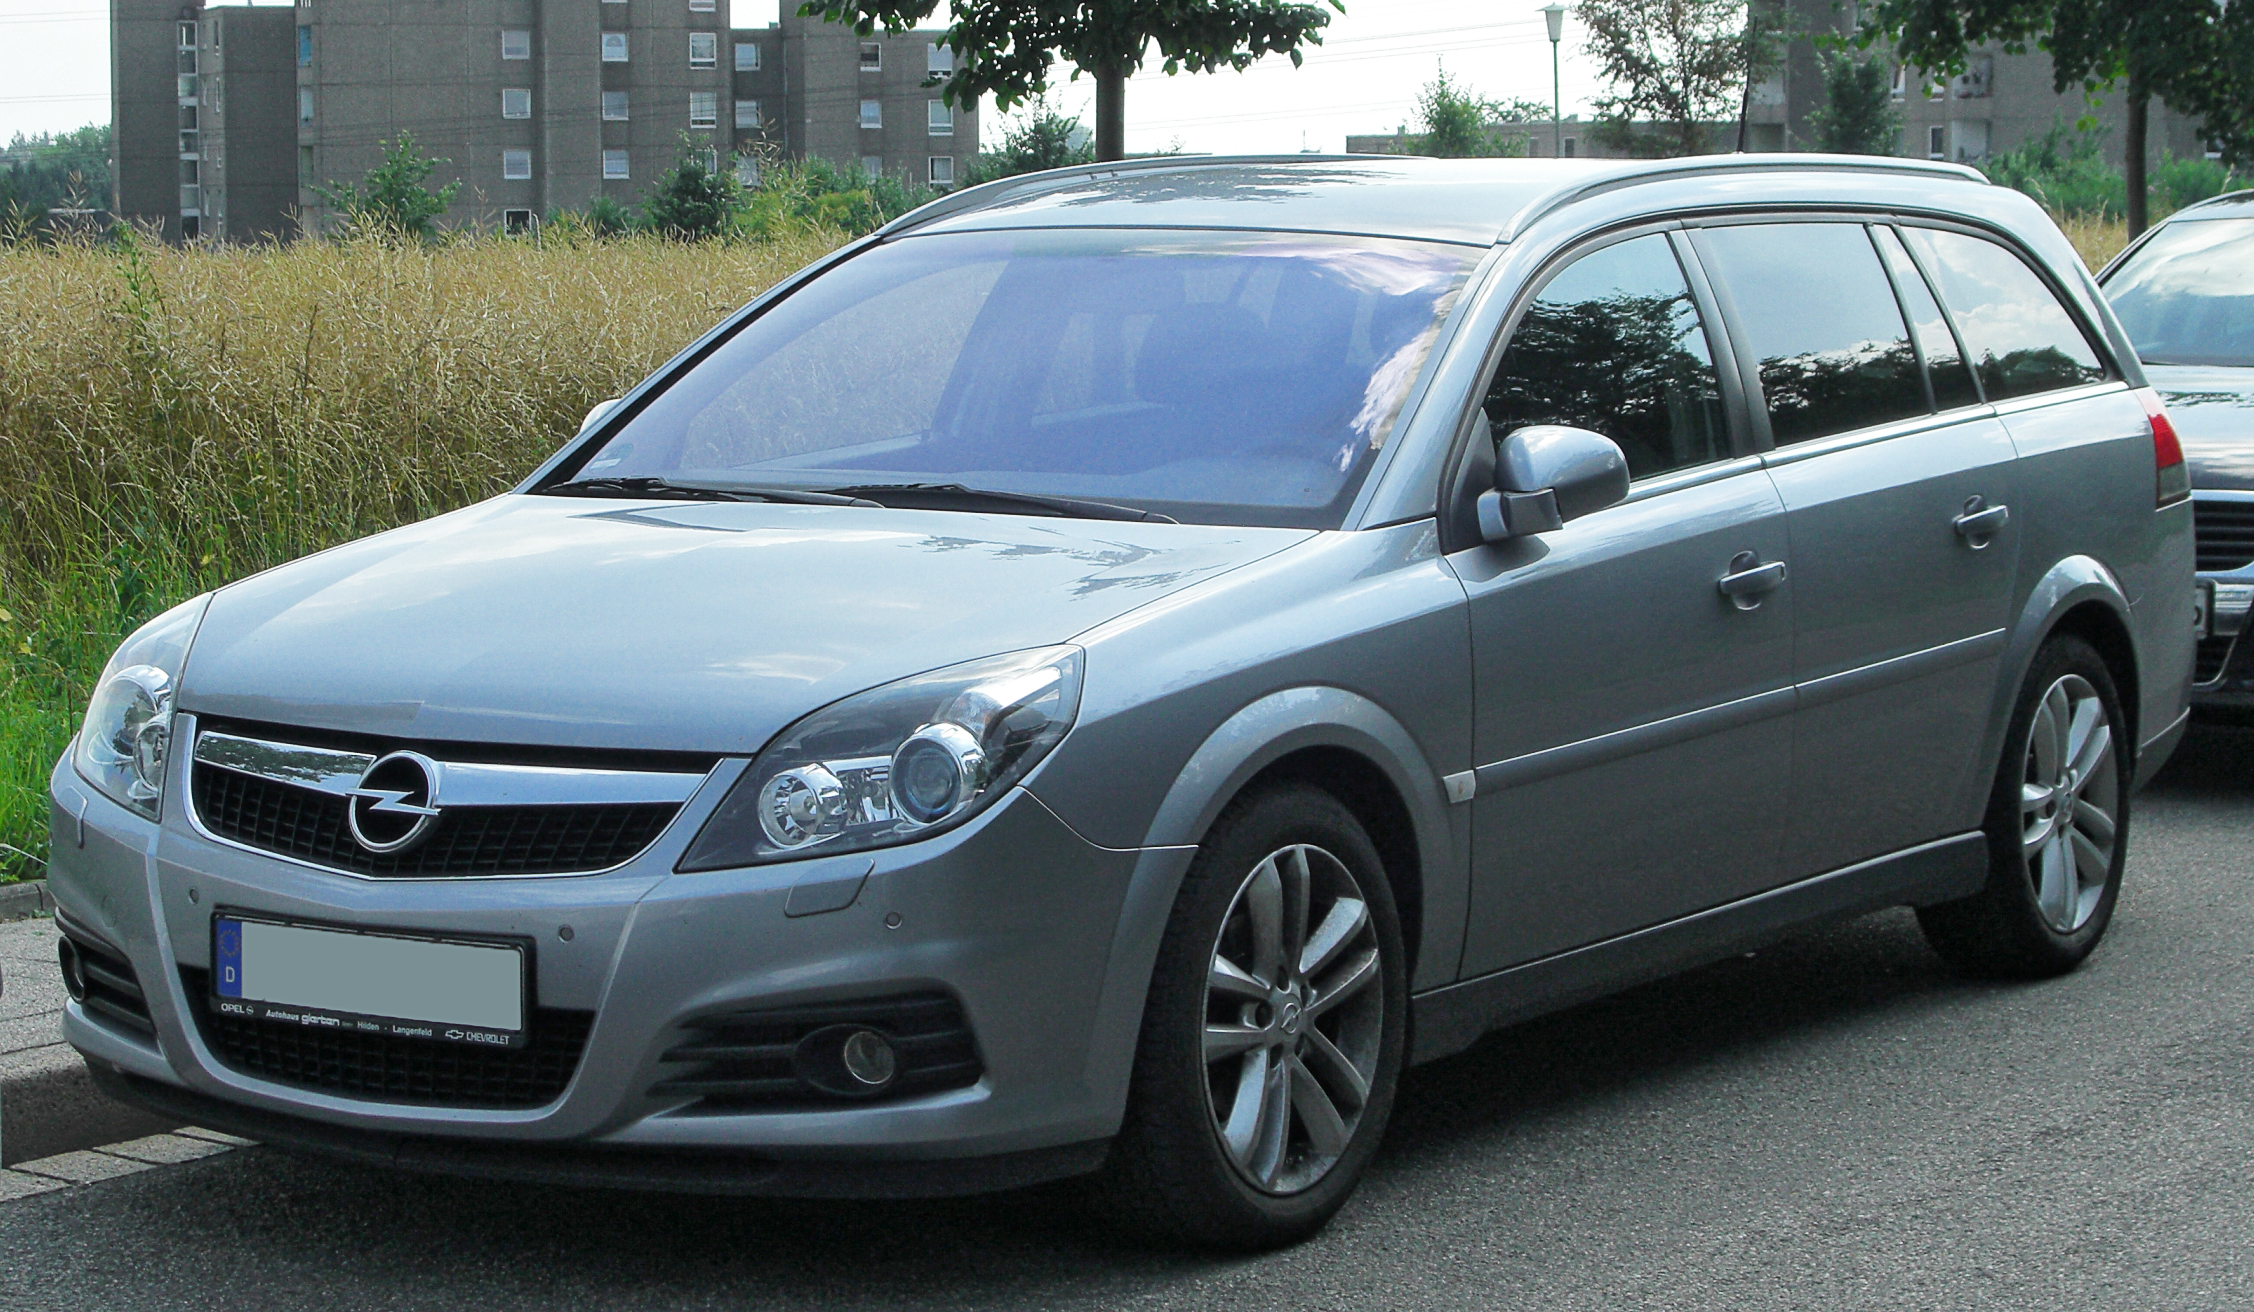 holden vectra (b) 2013 images #6